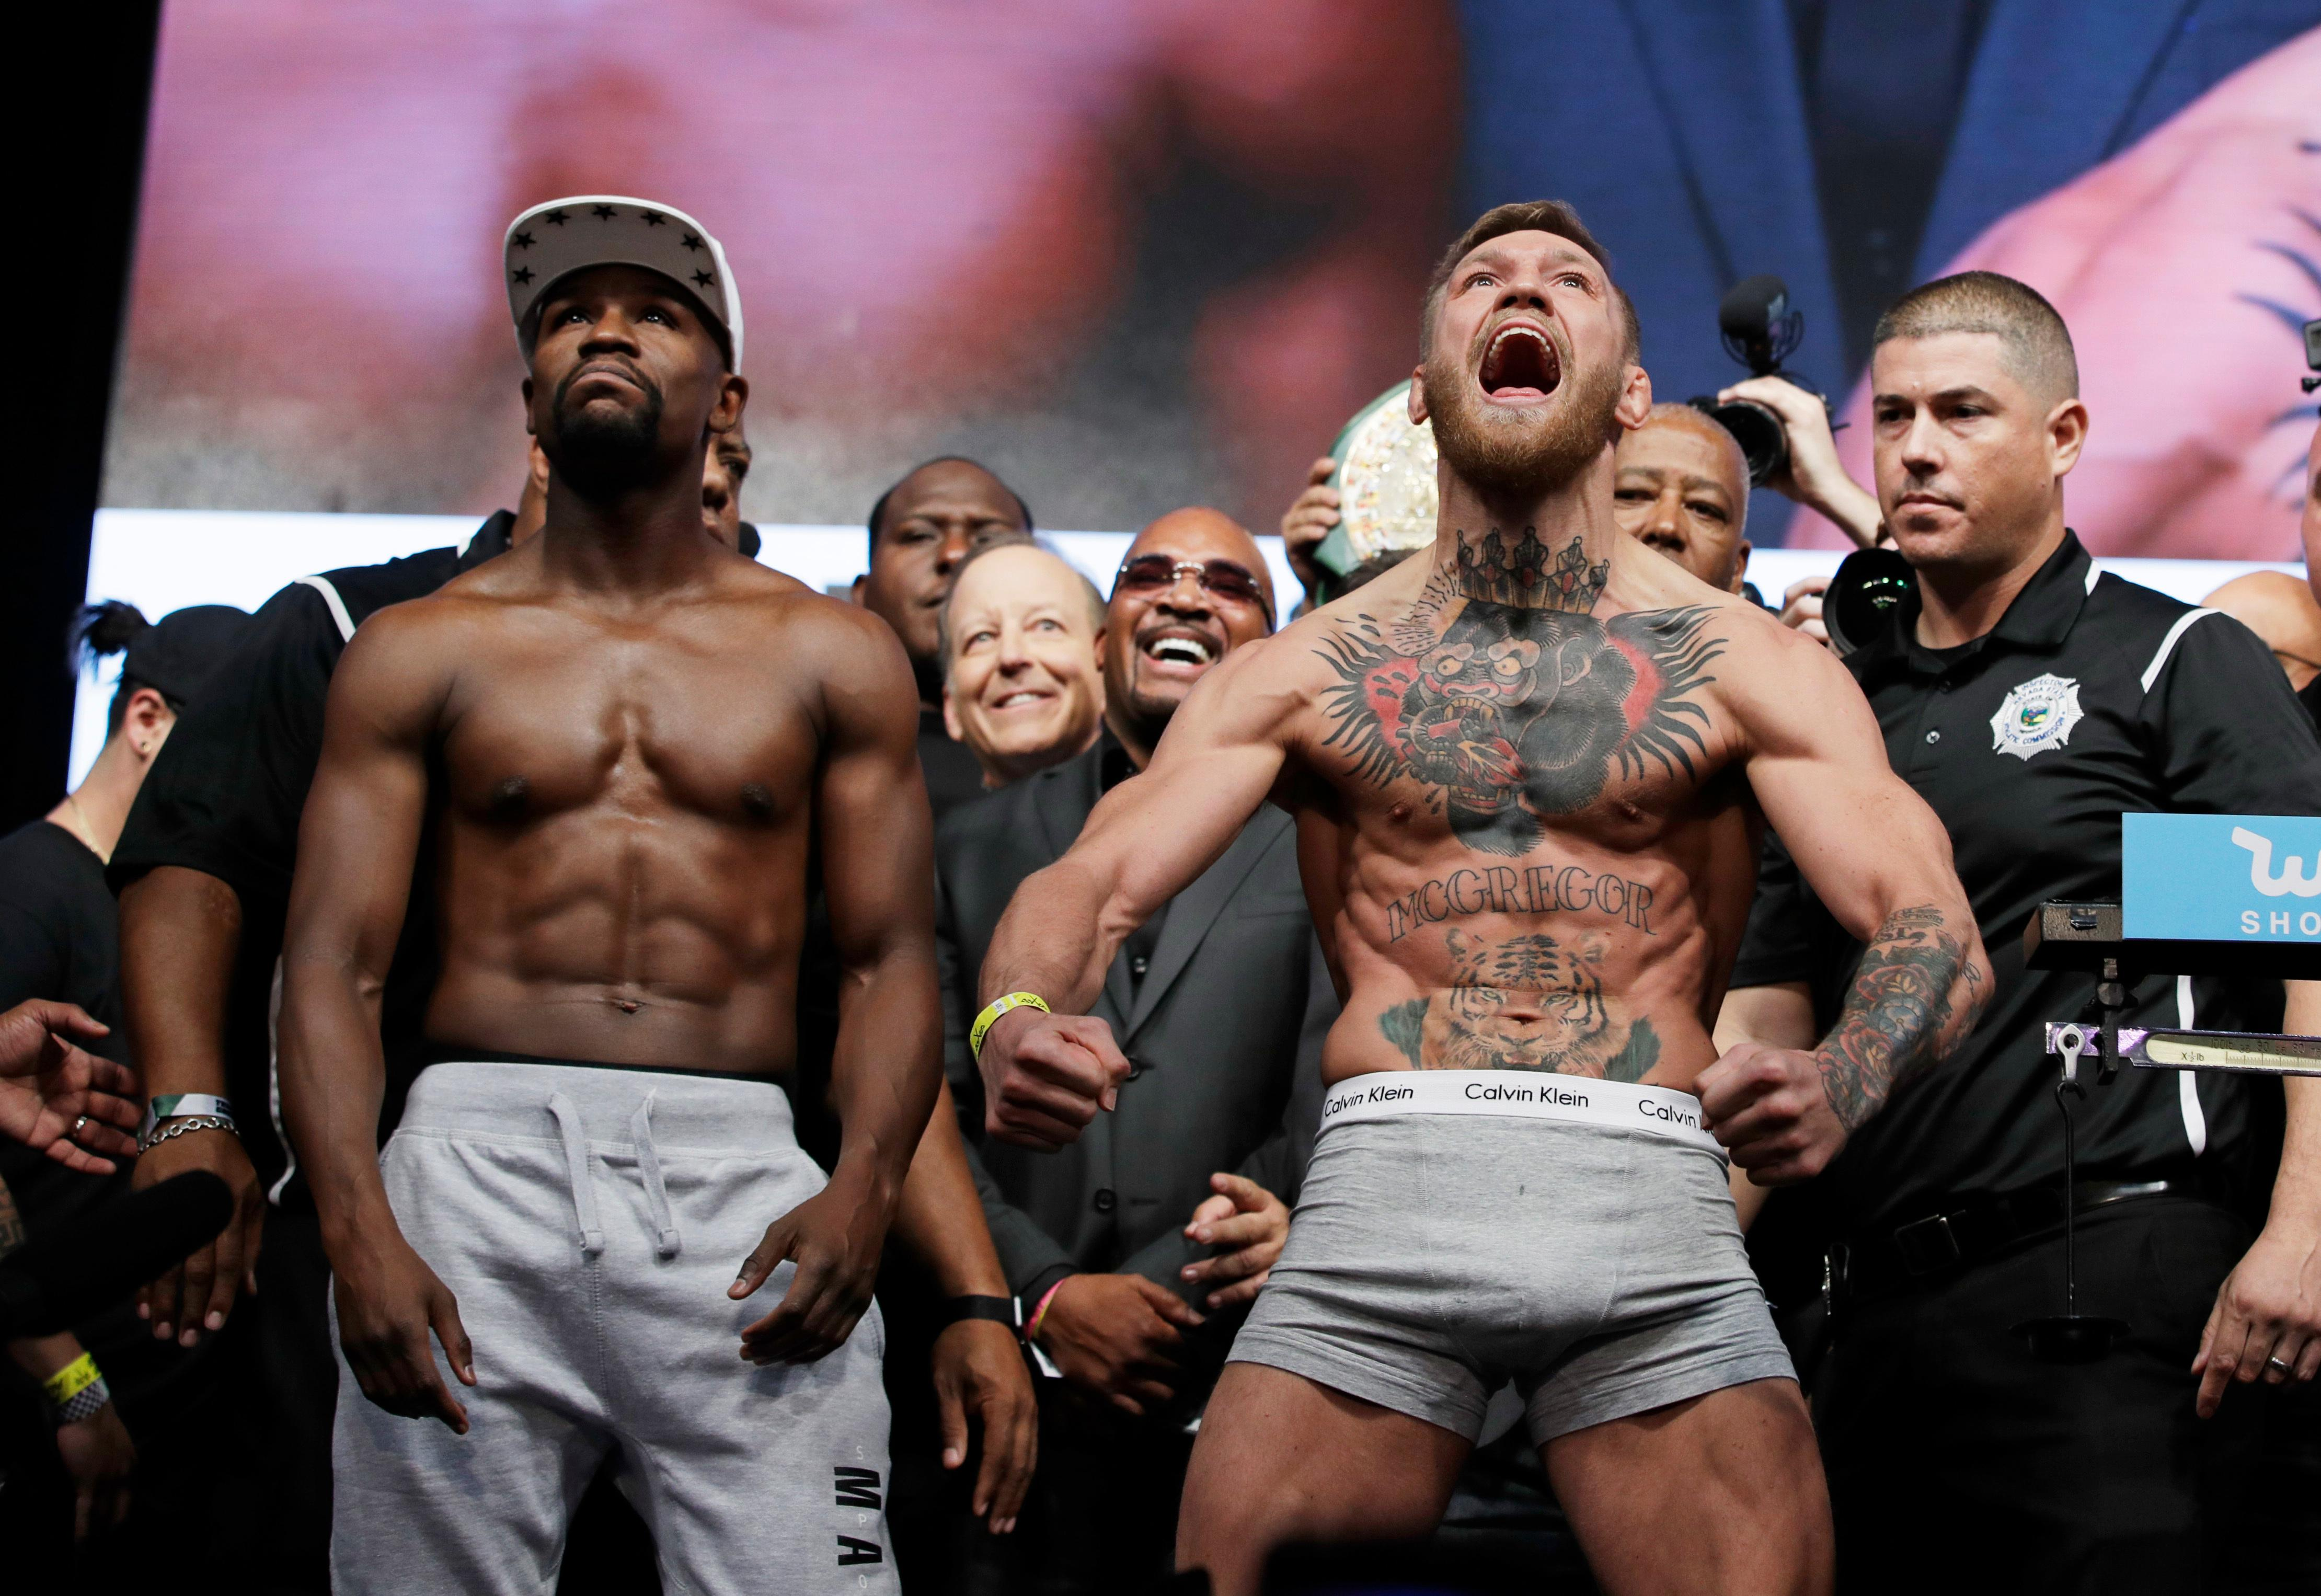 Floyd Mayweather Jr., left, and Conor McGregor pose during weigh-ins Friday, Aug. 25, 2017, in Las Vegas for their Saturday boxing bout. (AP Photo/John Locher)